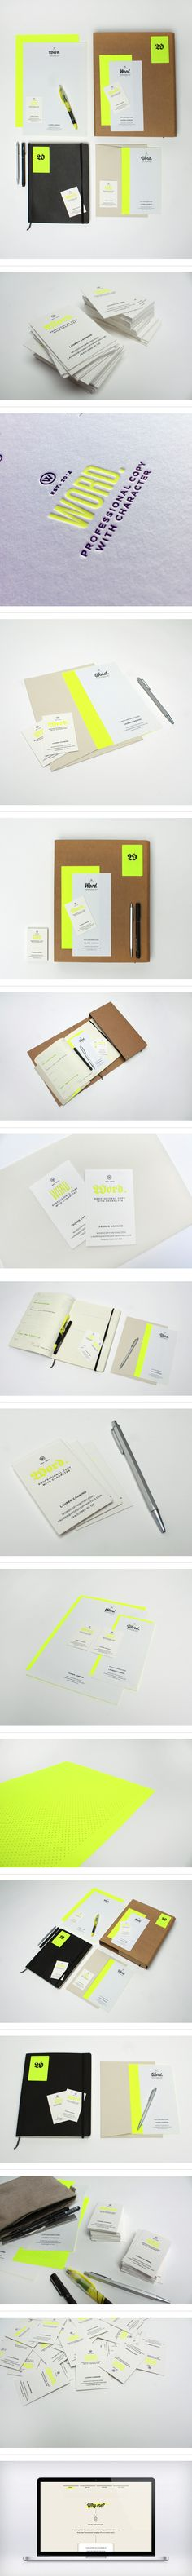 WOW. I only hope that one day, I can create #branding as beautiful as this. Talk about INSPIRING: Word. by Passport, via Behance #graphicdesign